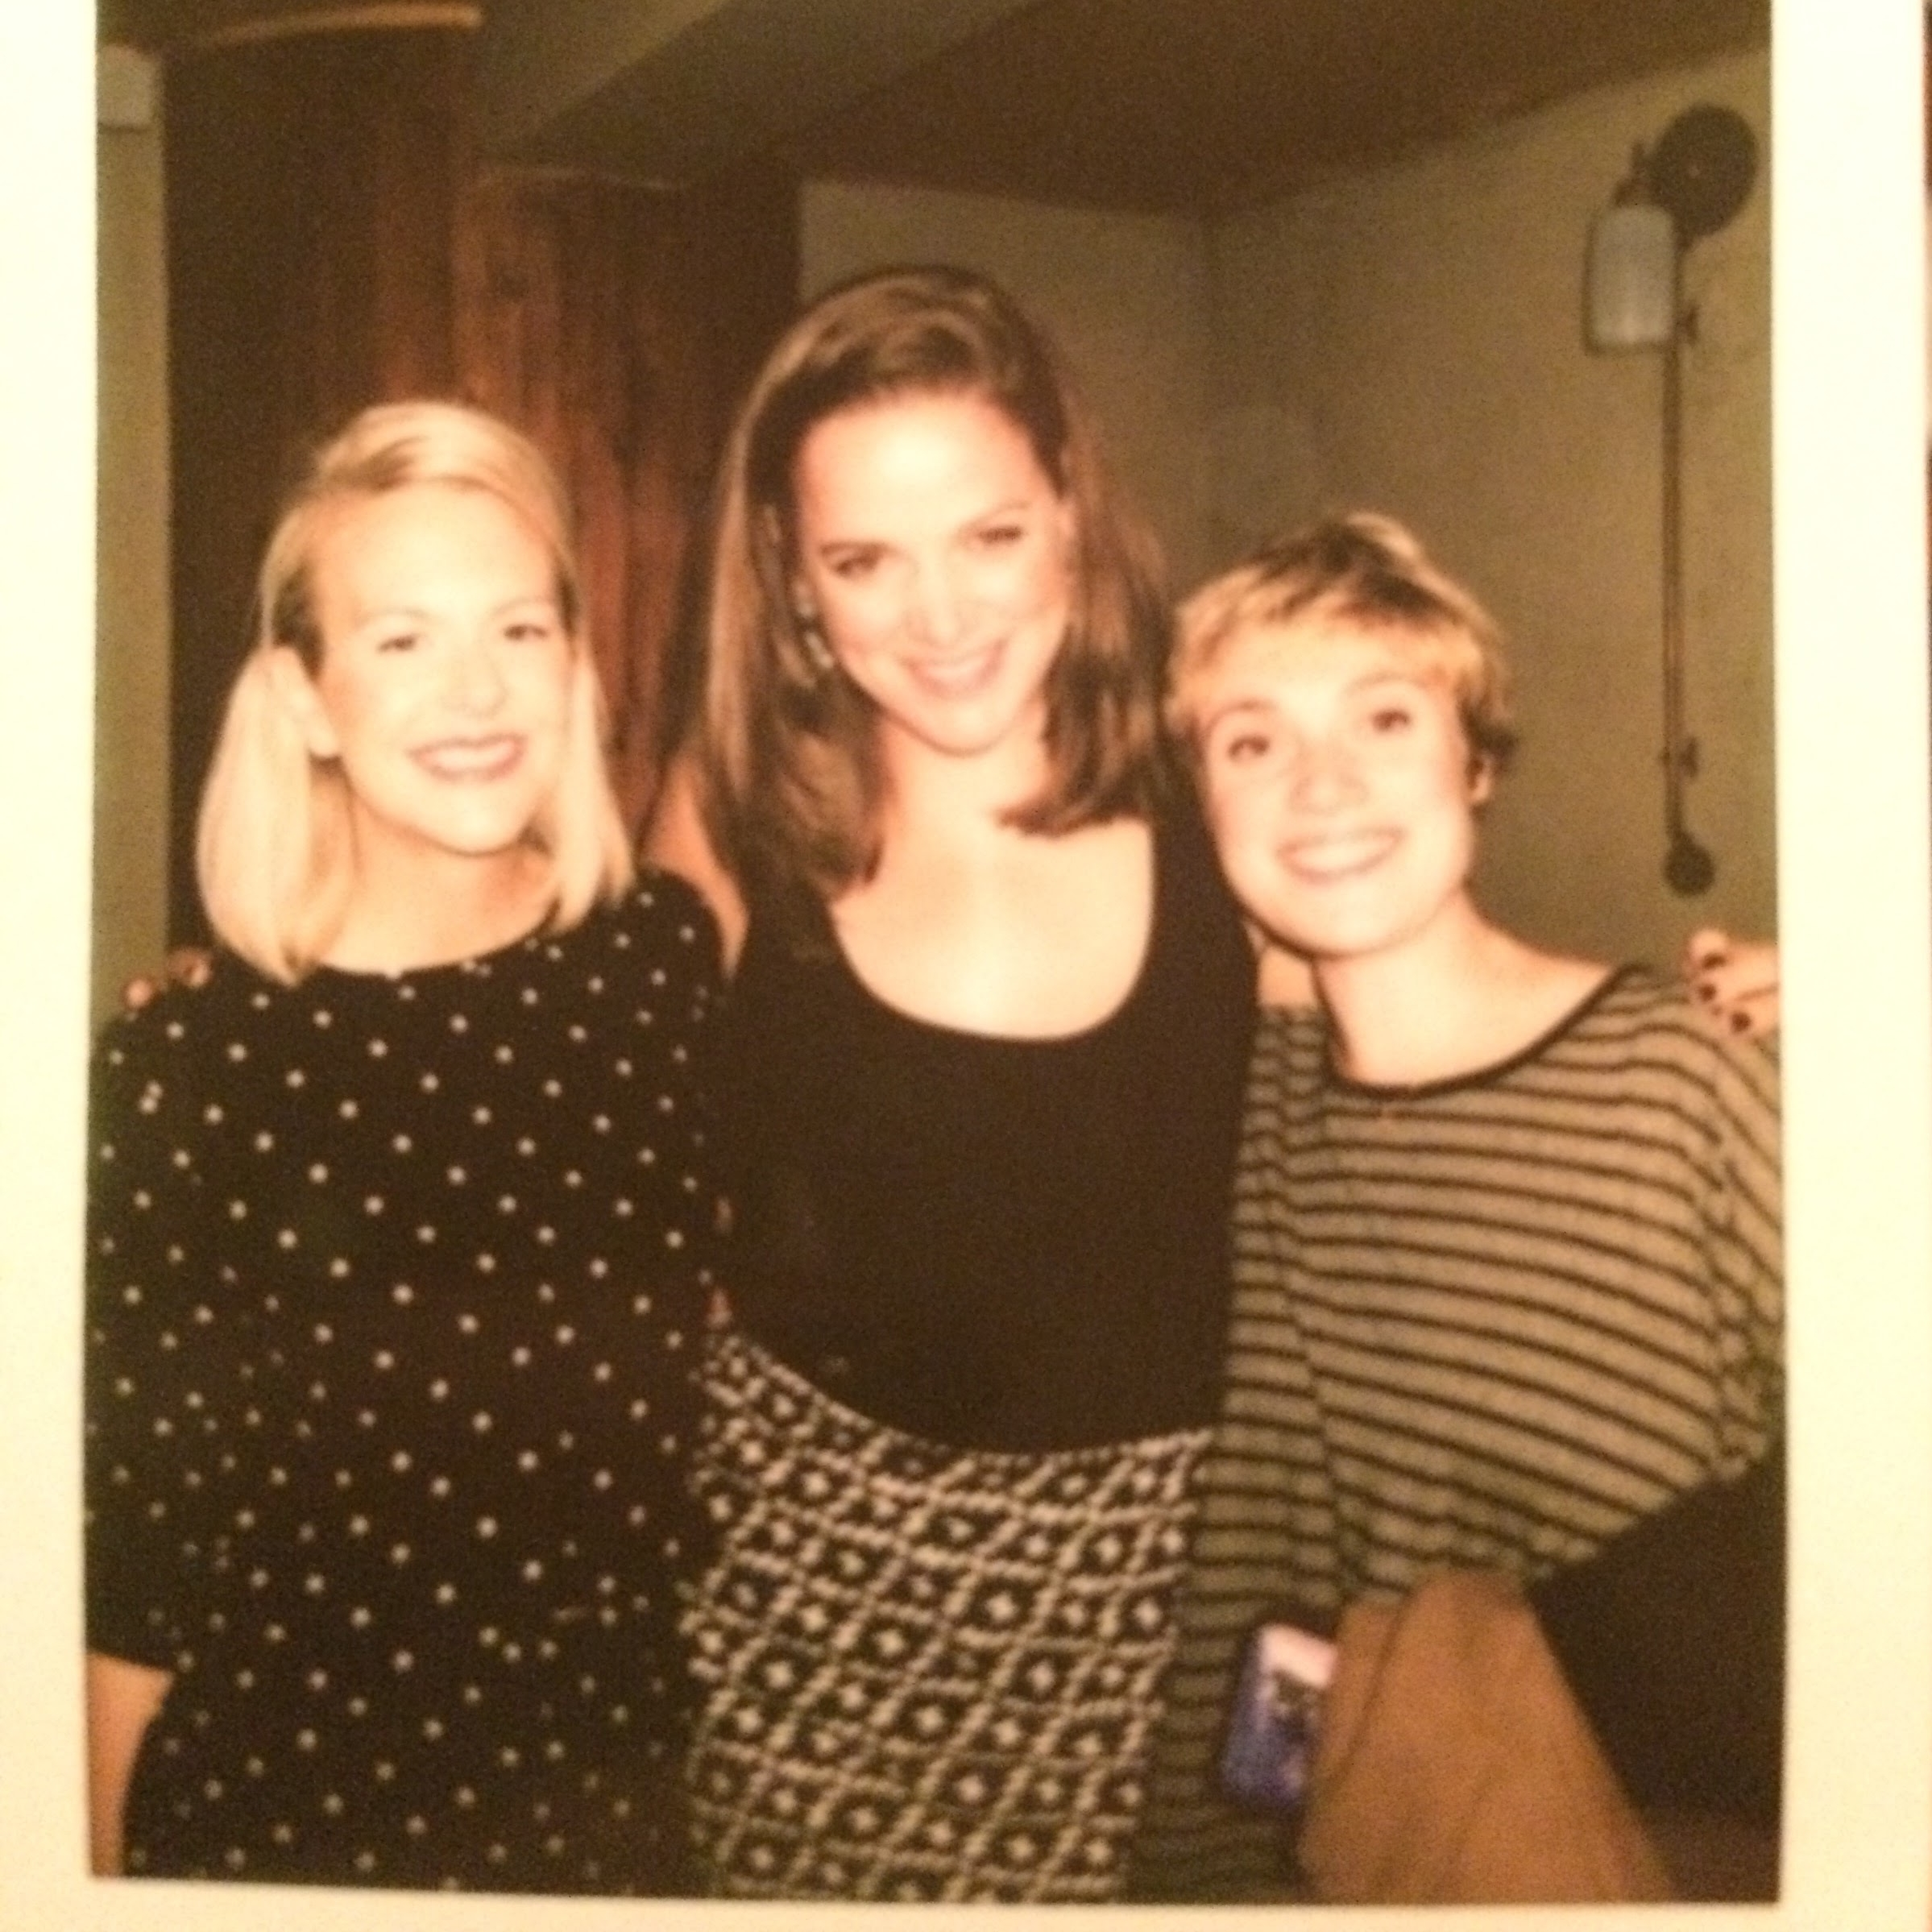 A polaroid from Rebecca's going away party